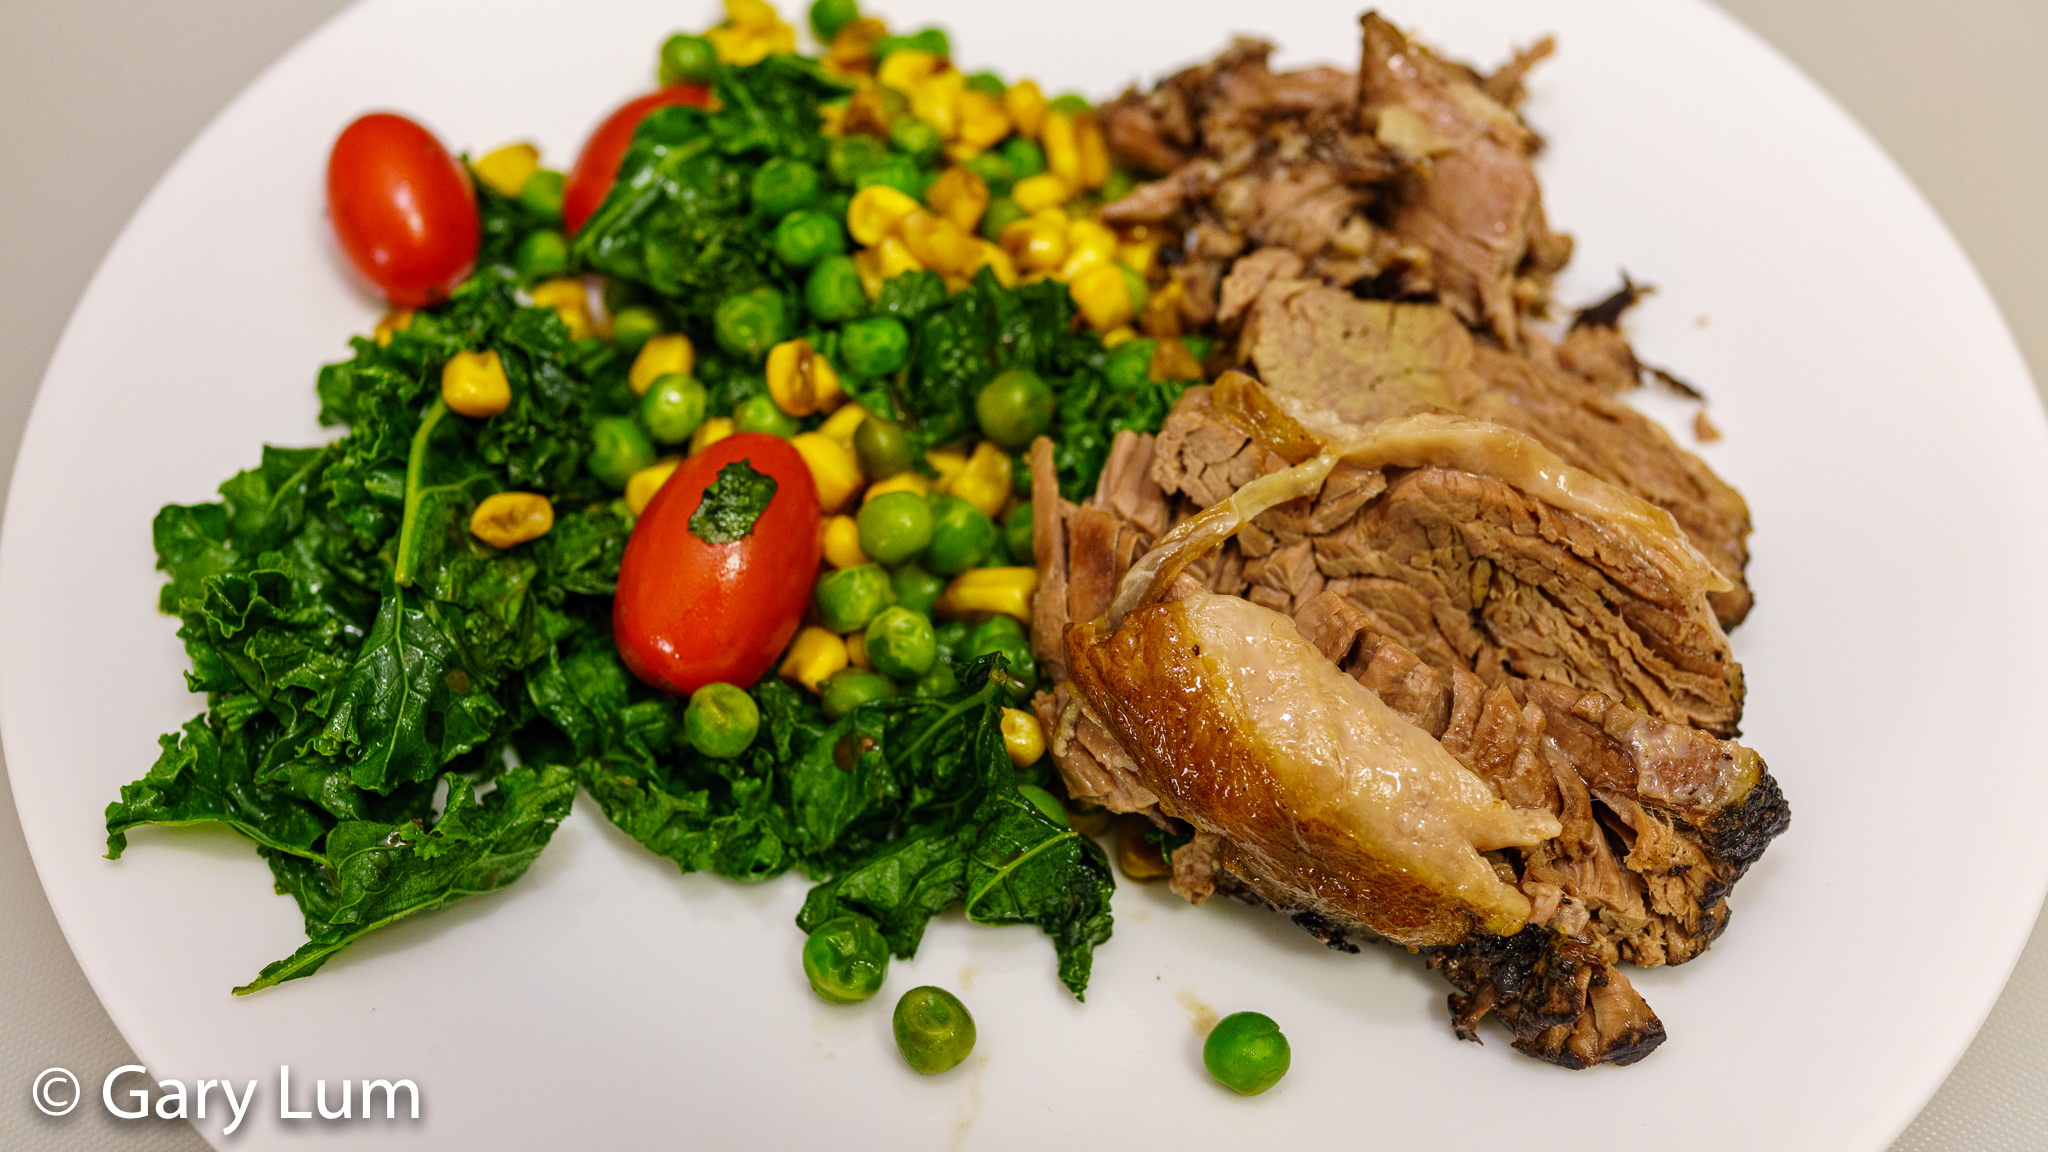 Slowly cooked lamb leg with kale, peas, corn, and tomatoes. Gary Lum.